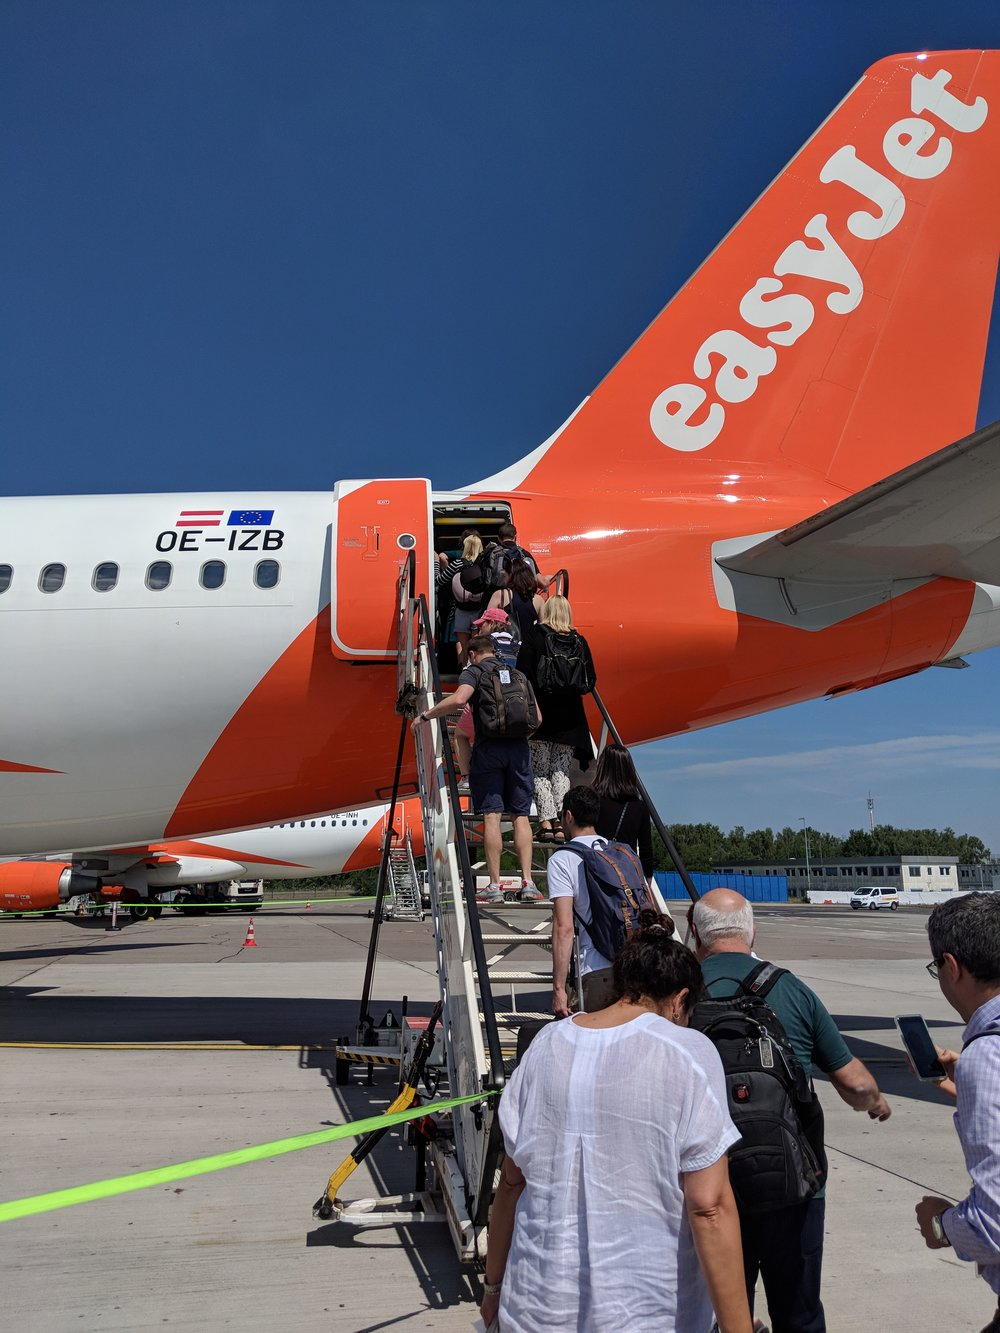 Easy Jet to Budapest